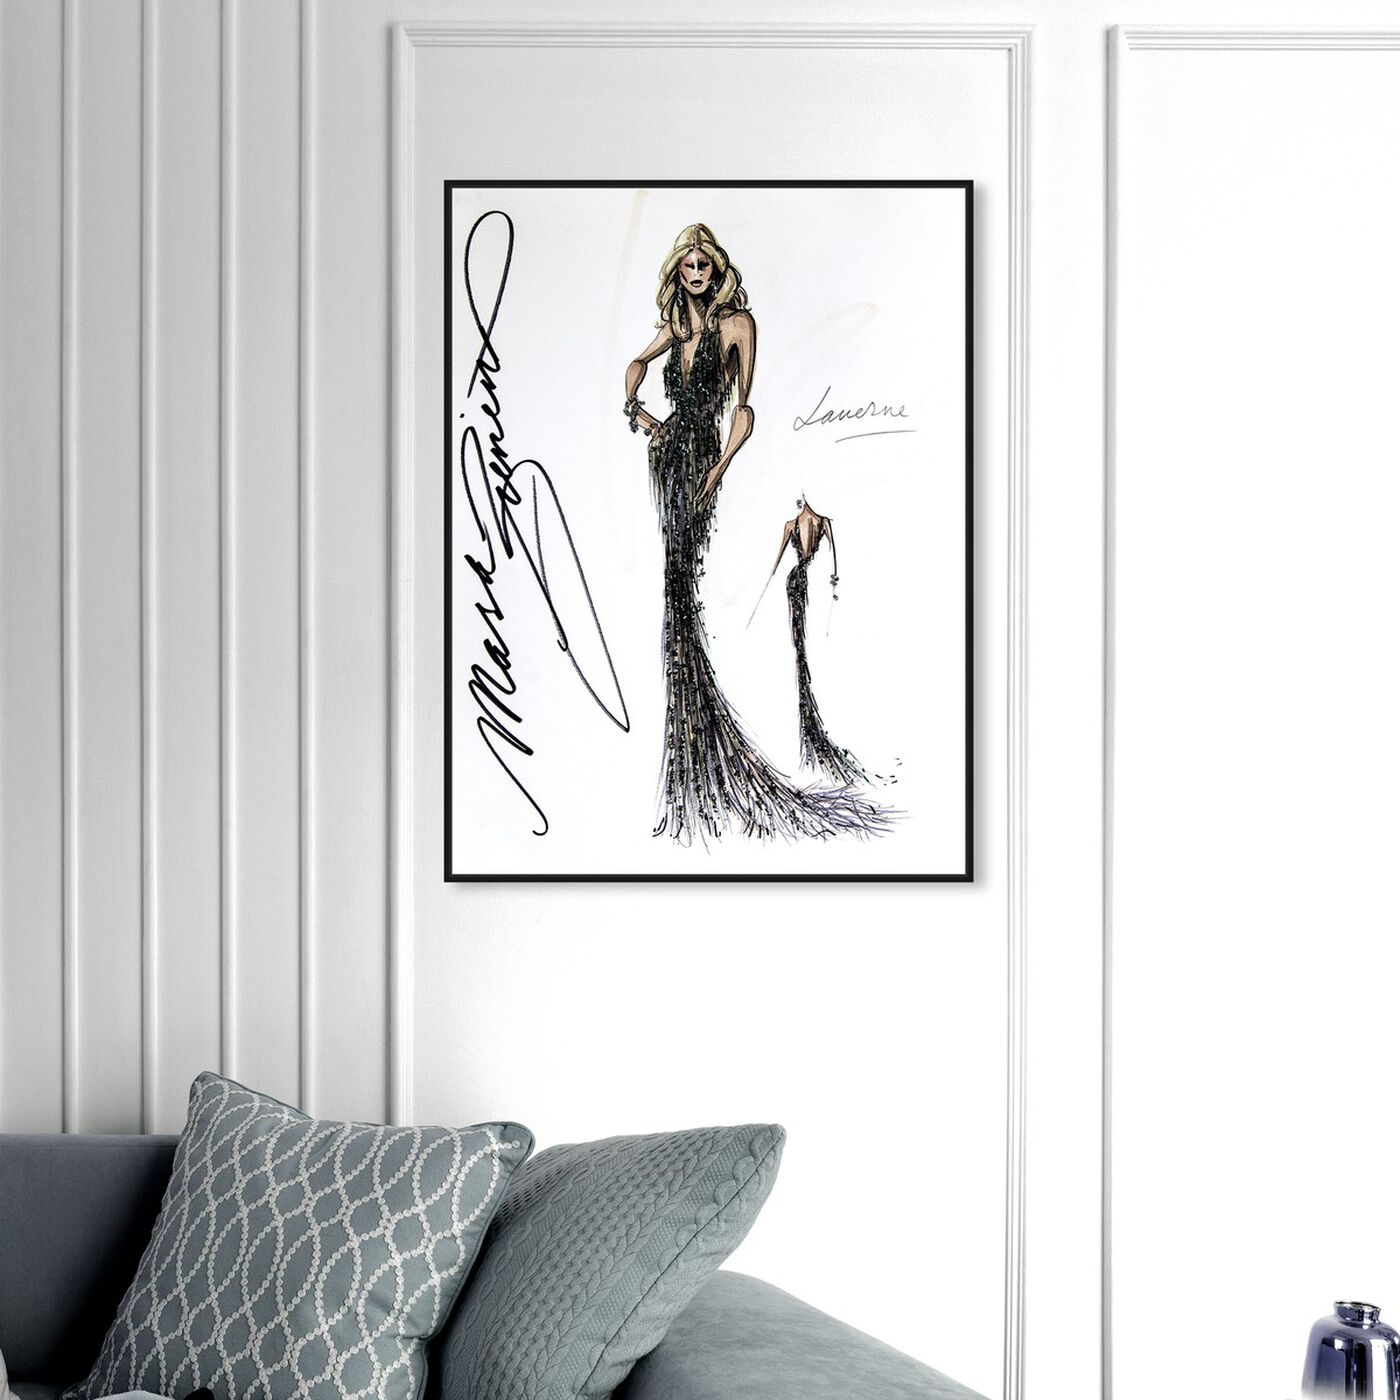 Hanging view of Mark Zunino - Laverne featuring fashion and glam and dress art.